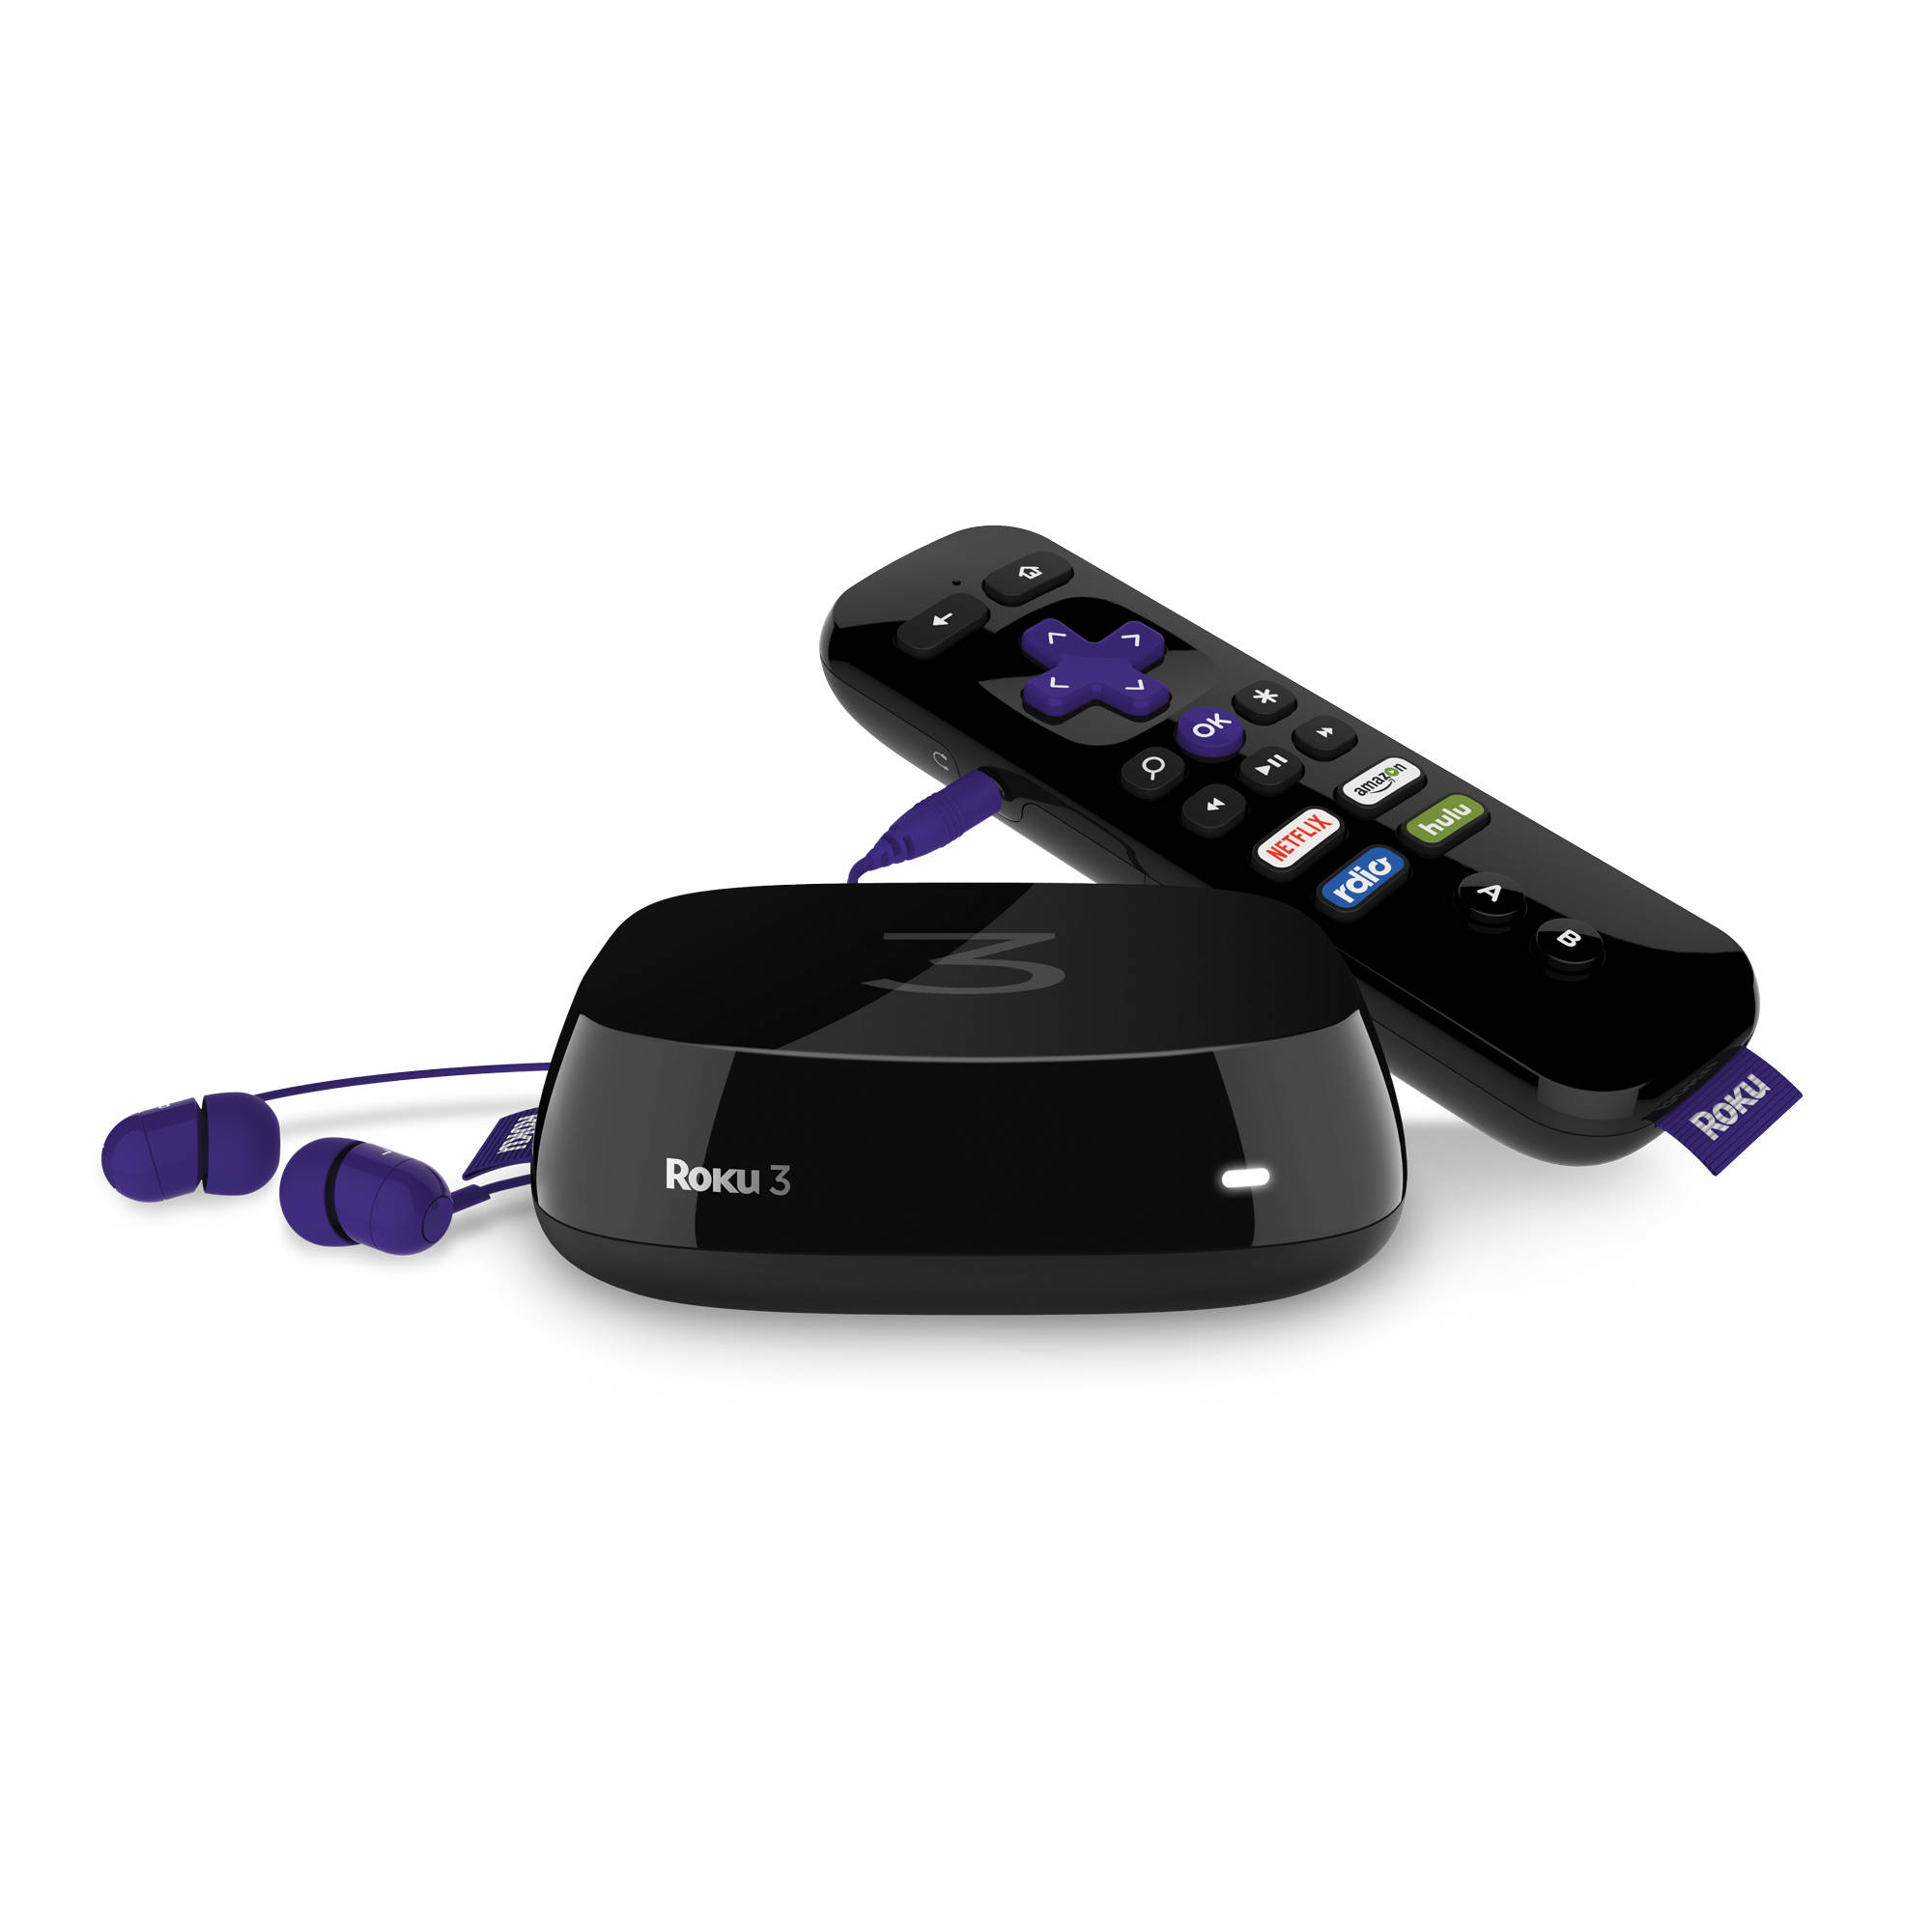 Streaming video player comparison nba